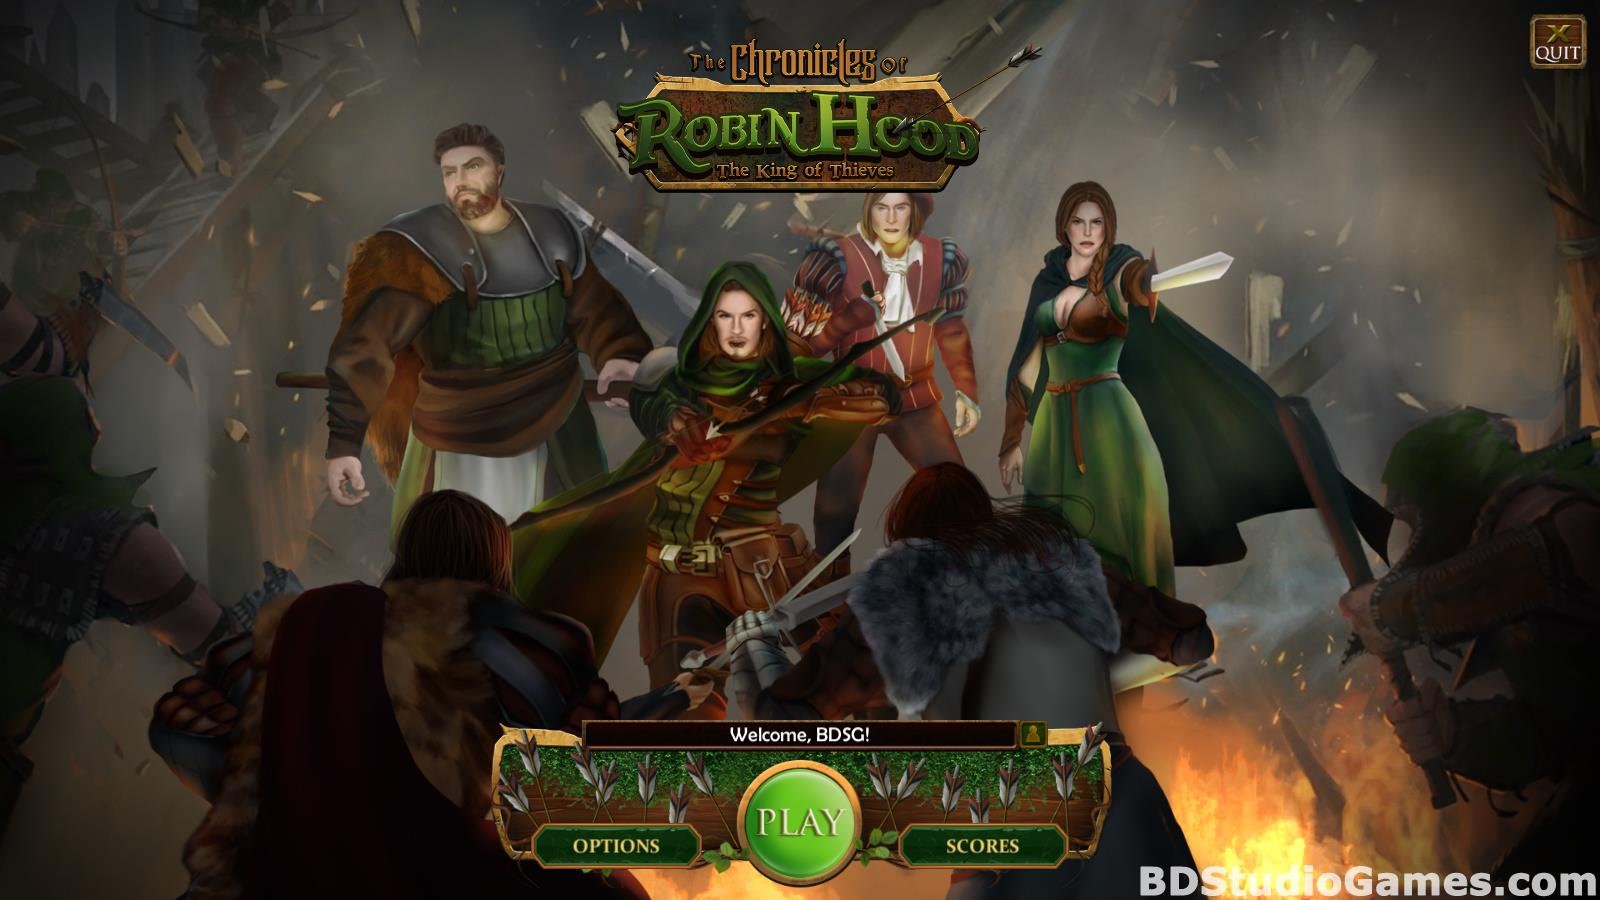 The Chronicles of Robin Hood: The King of Thieves Free Download Screenshots 01